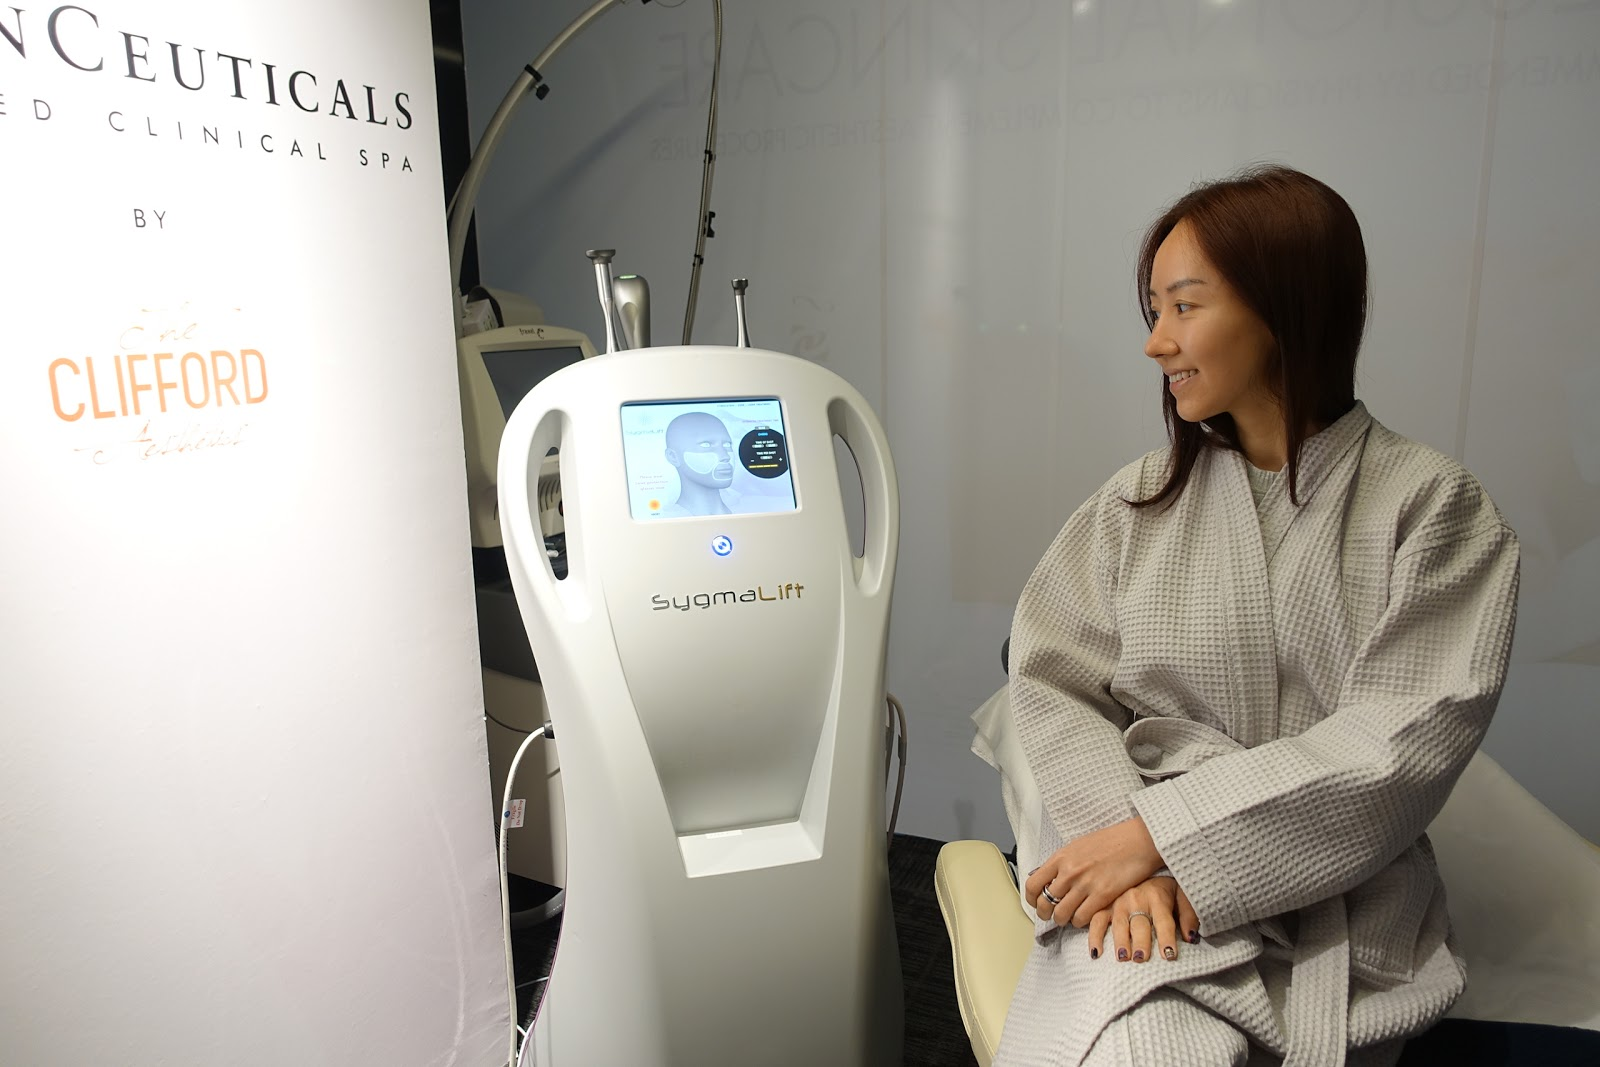 Review of HIFU Sygmalift Treatment at The Clifford Clinic on